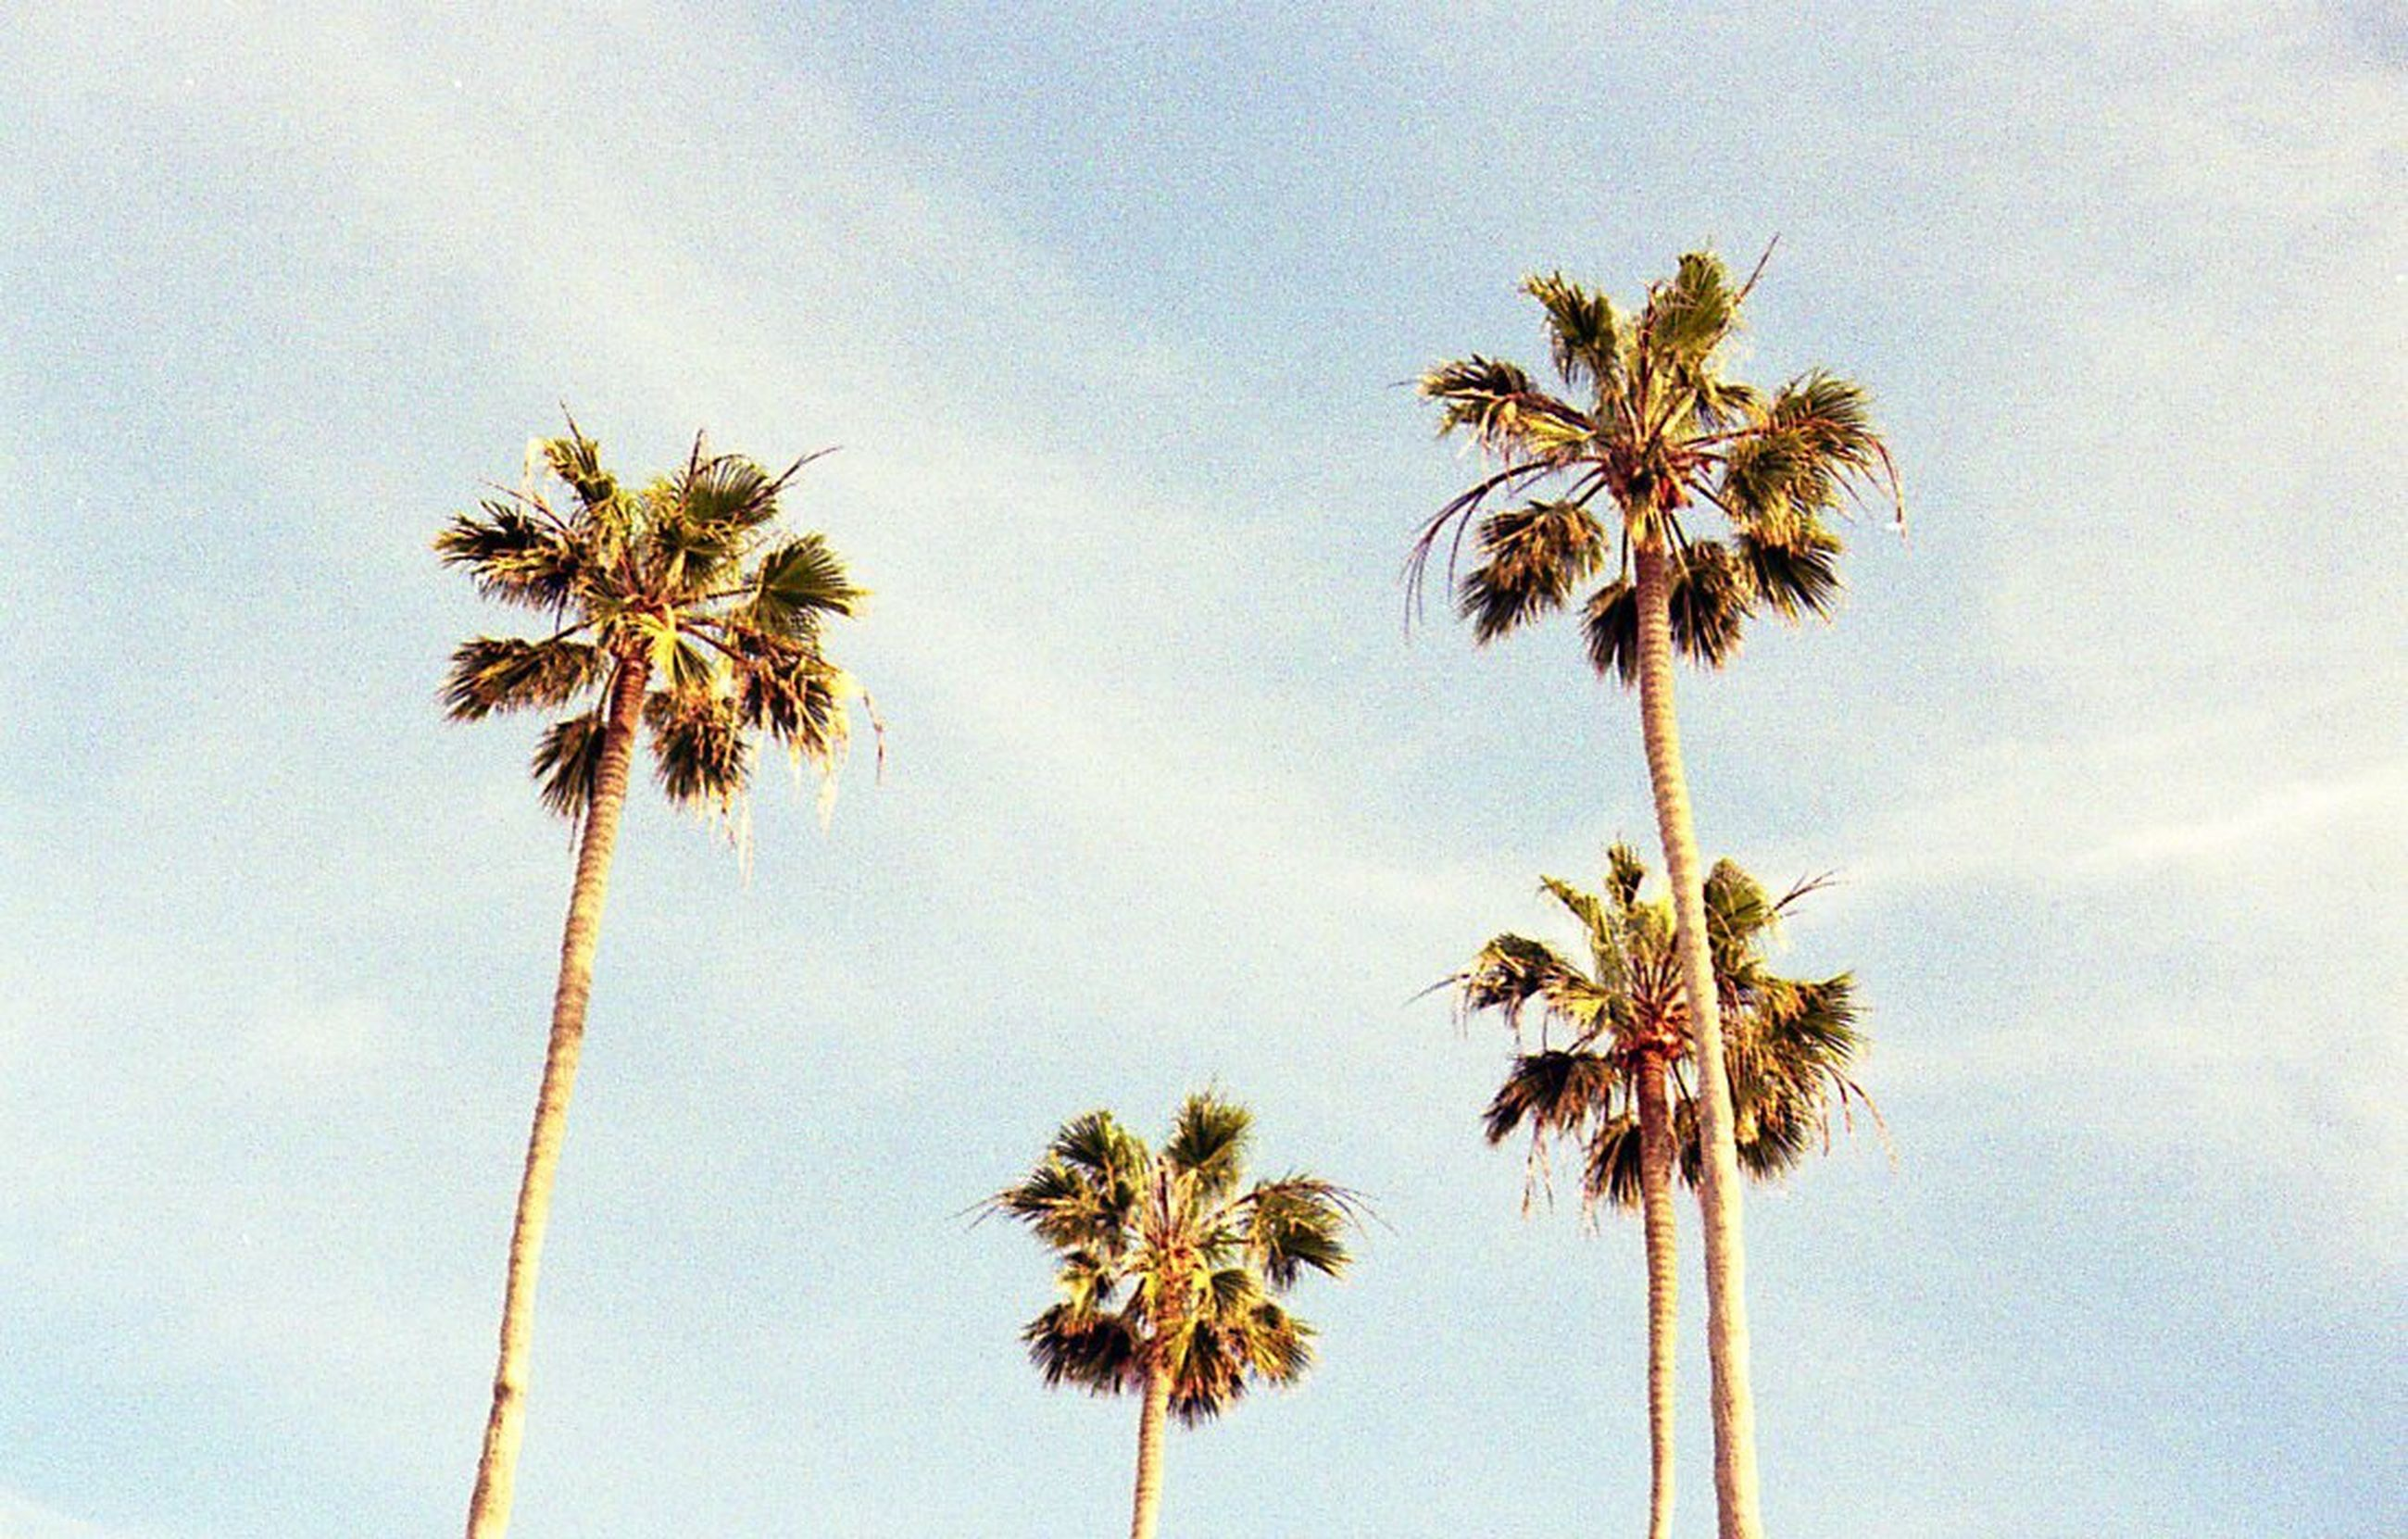 palm tree, tree, low angle view, beauty in nature, tree trunk, sky, nature, day, outdoors, growth, no people, scenics